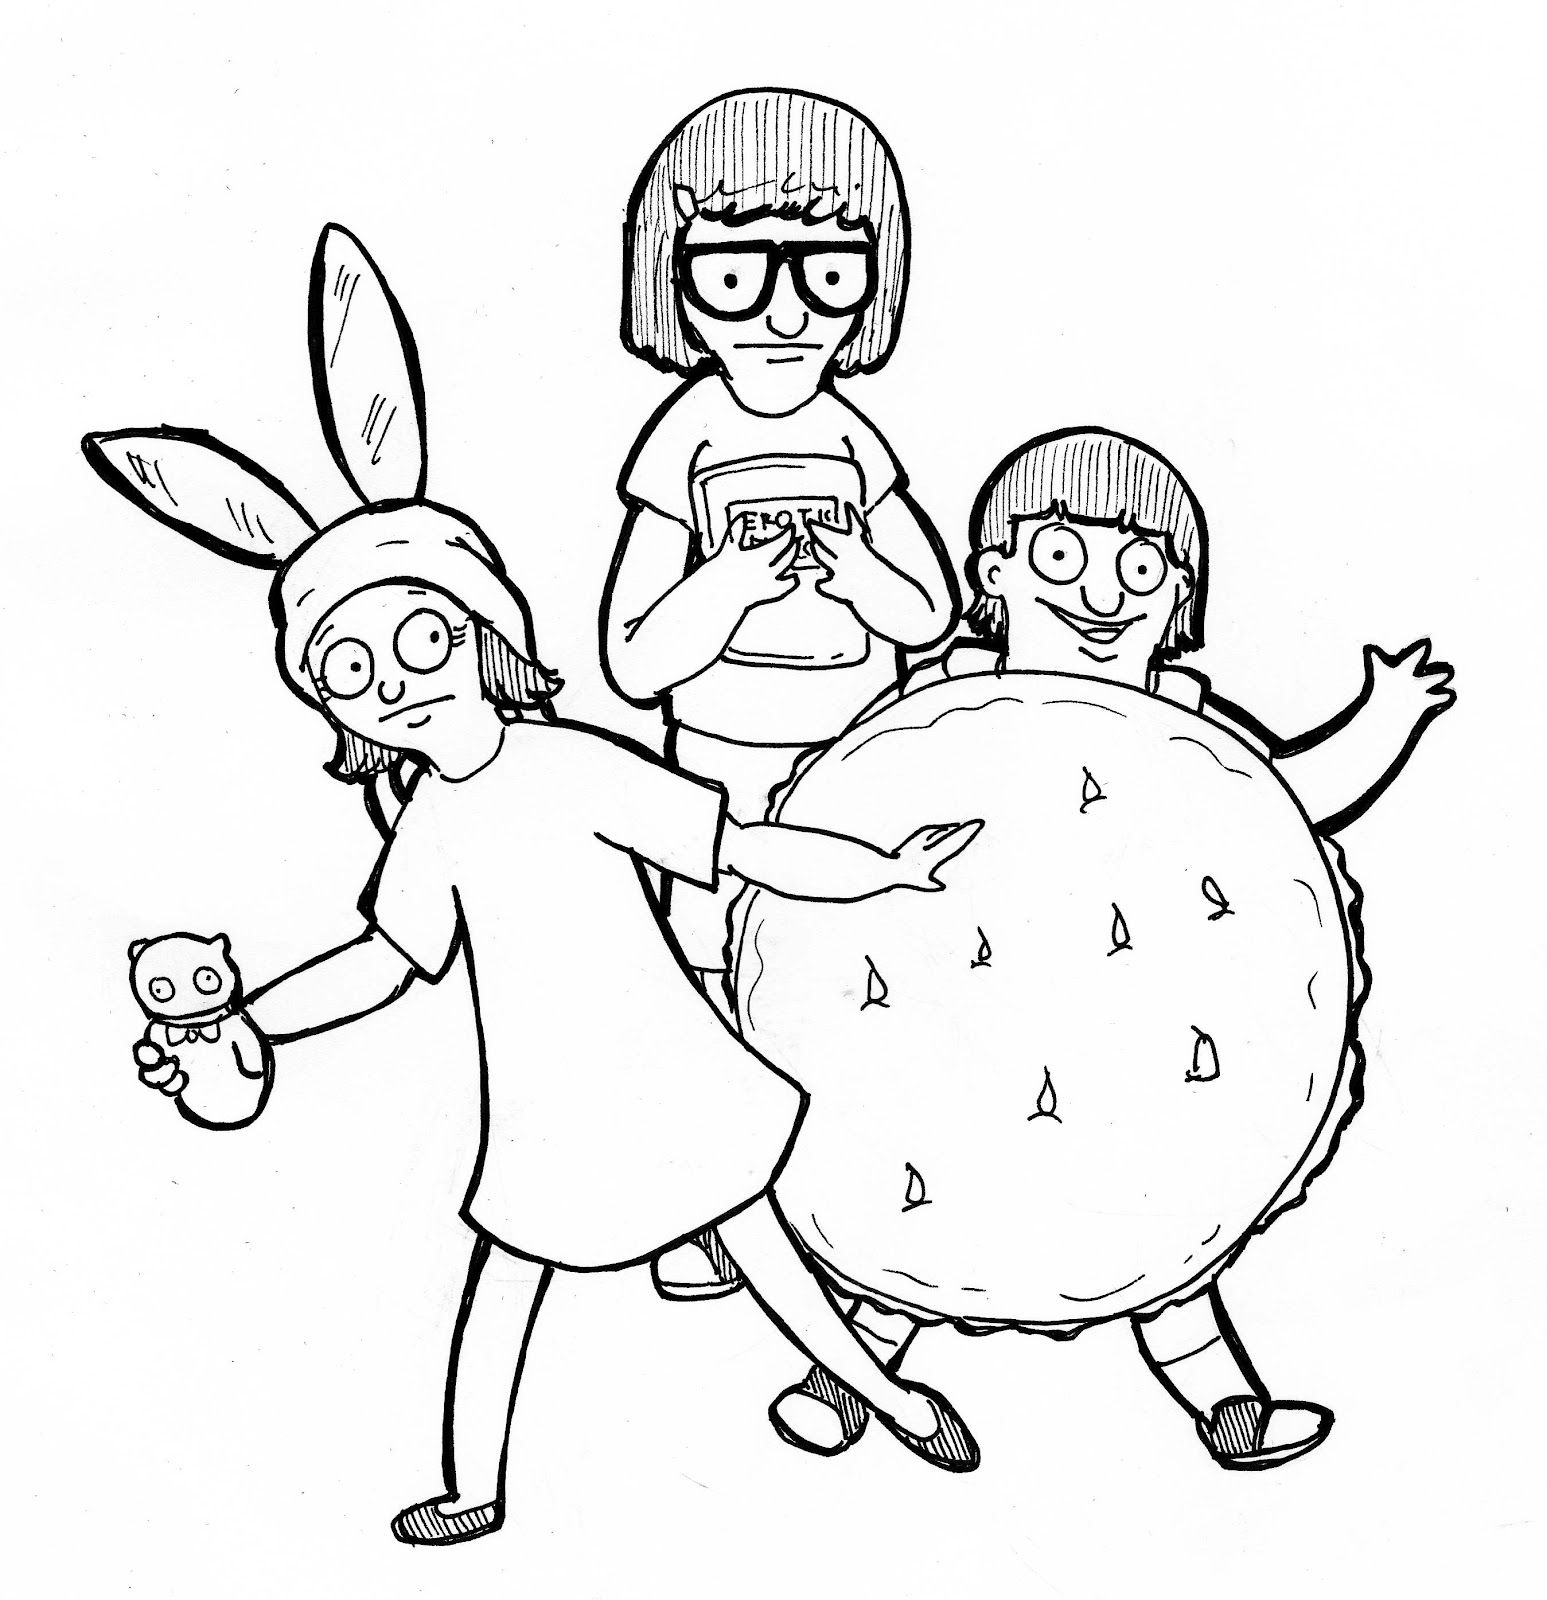 Bobsburgers Jpg 1547 1600 Unicorn Coloring Pages Cartoon